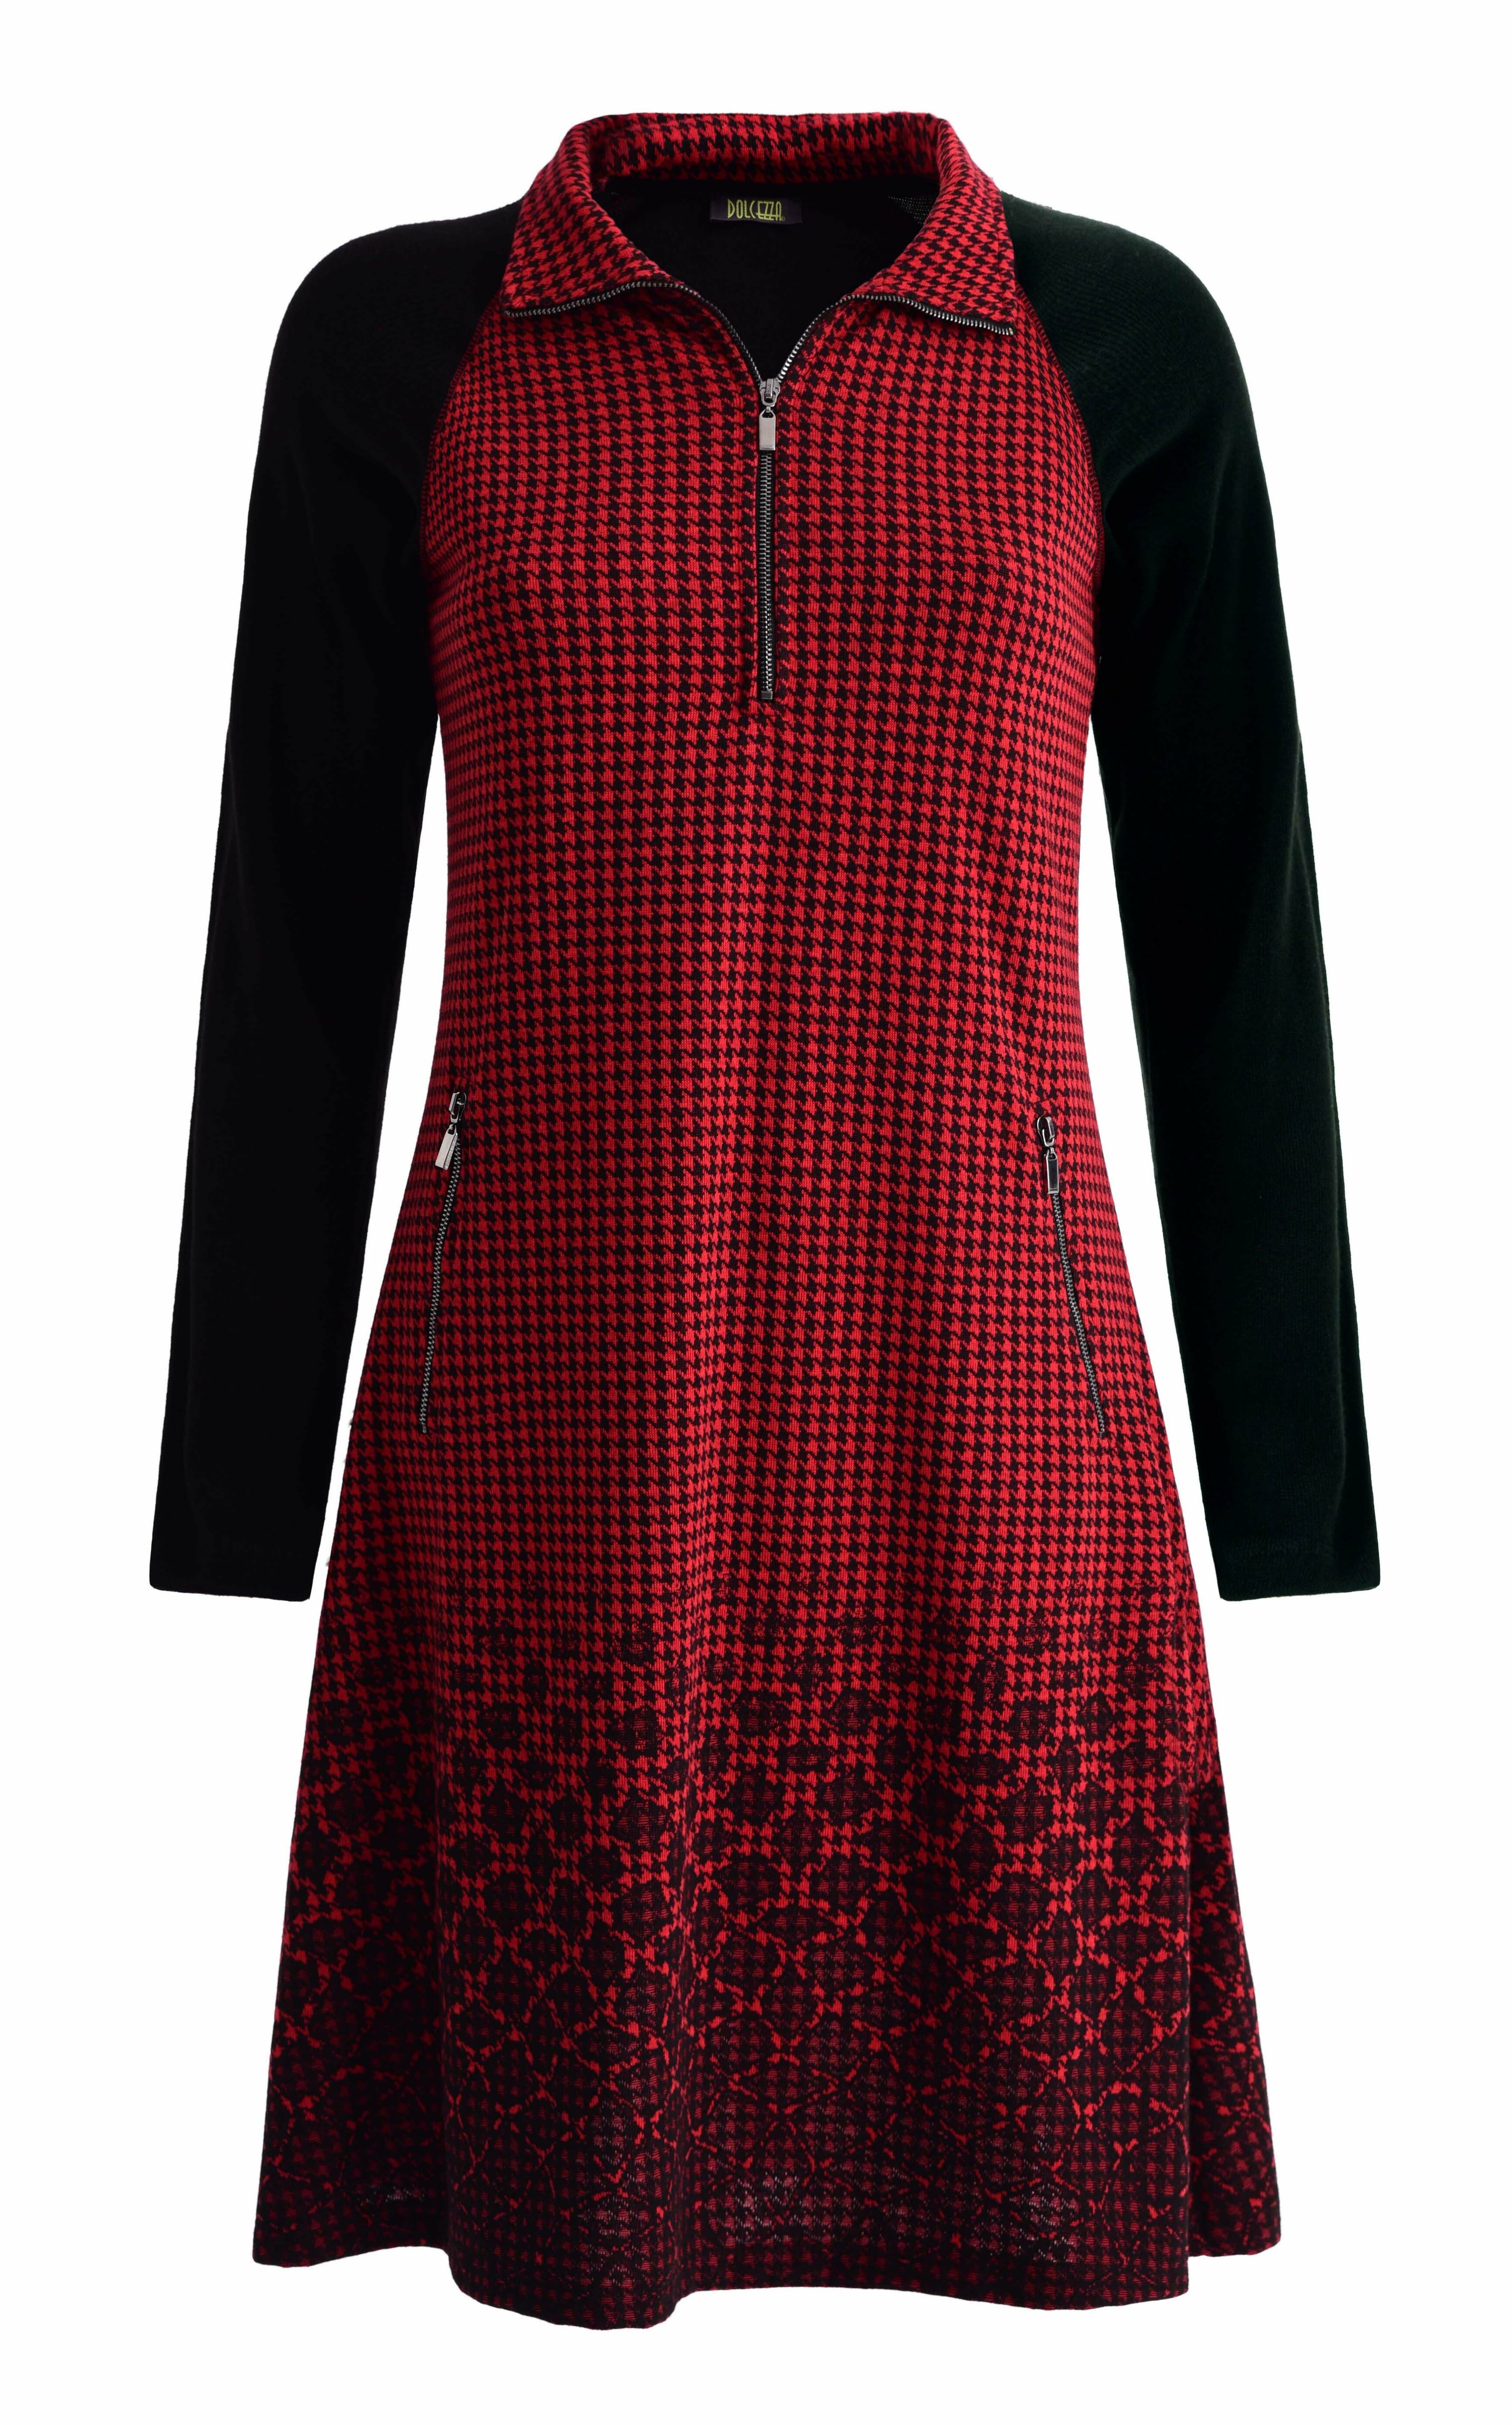 Dolcezza: Checked Petals A-line Dress (Only in Navy, 1 Left!) Dolcezza_59135